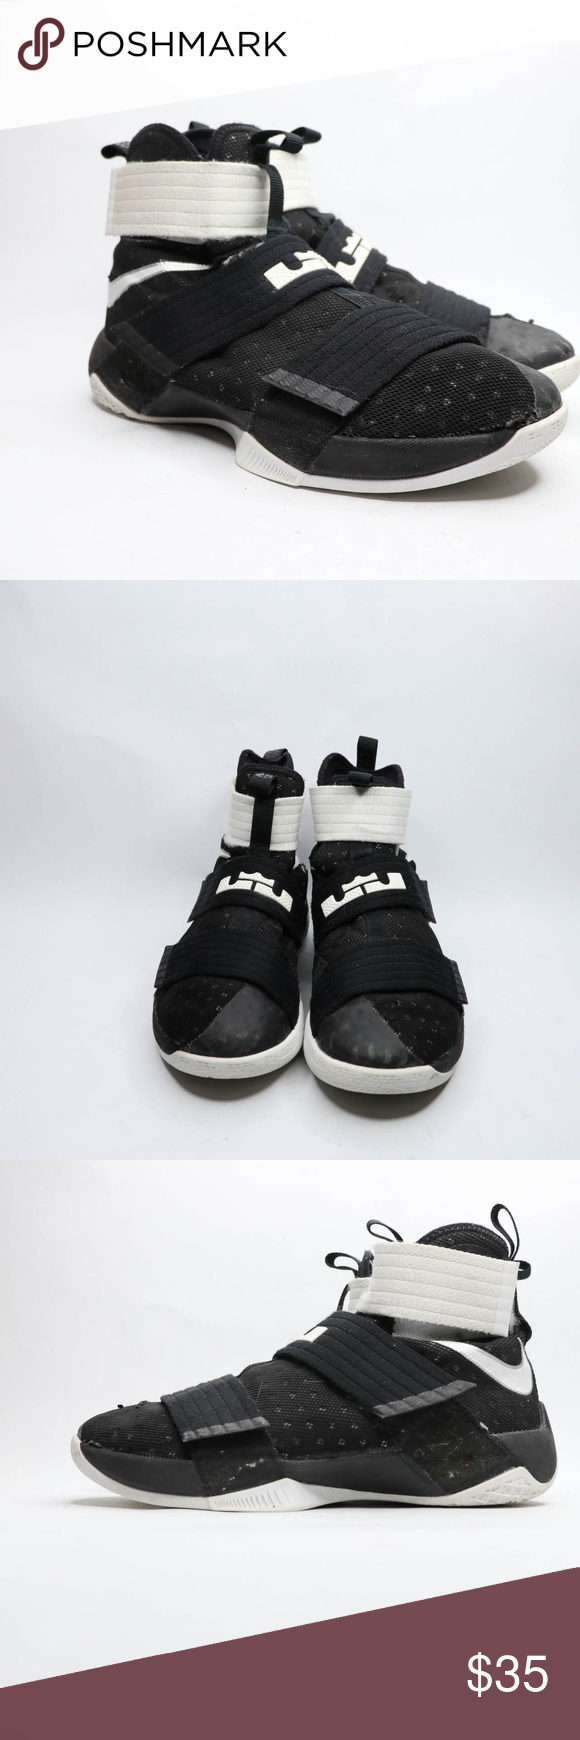 Nike Lebron James Soldier 10 Pre owned Nike Lebron James